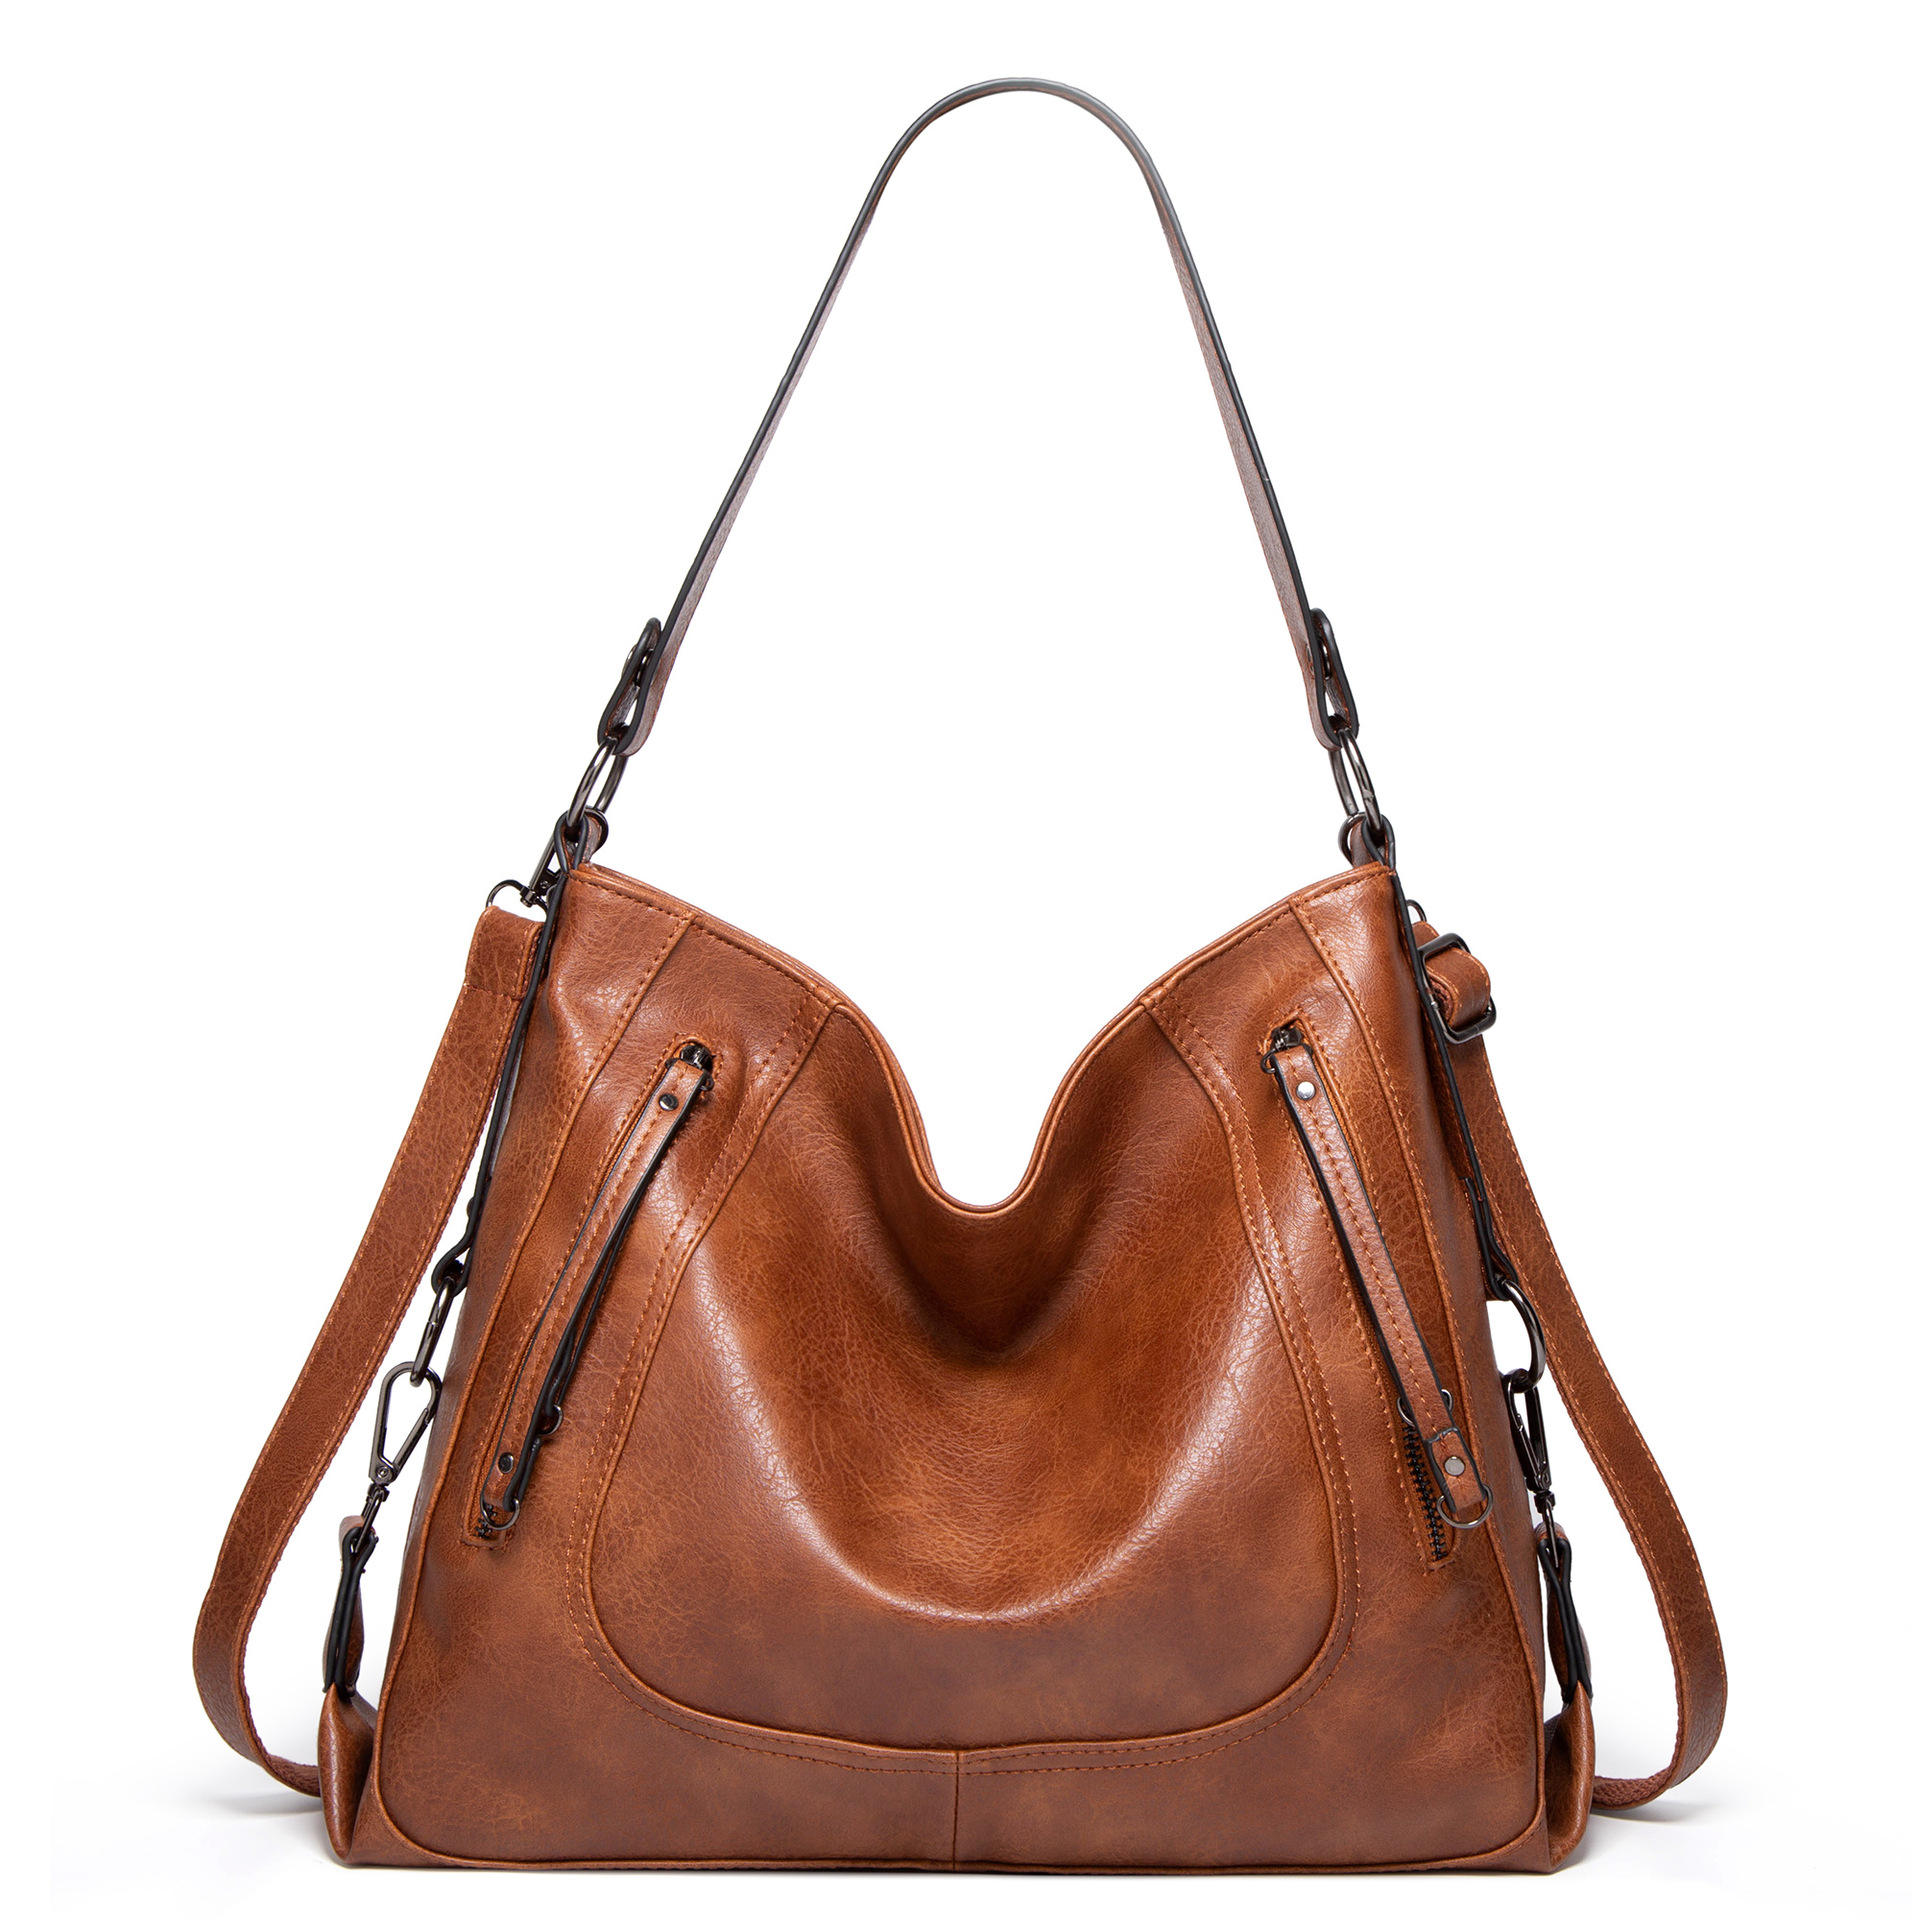 Fashion Lady Elegance Purse Vintage Leather Hobo Bucket Bag Large Capacity Purse with Front Pocket Designers Handbags